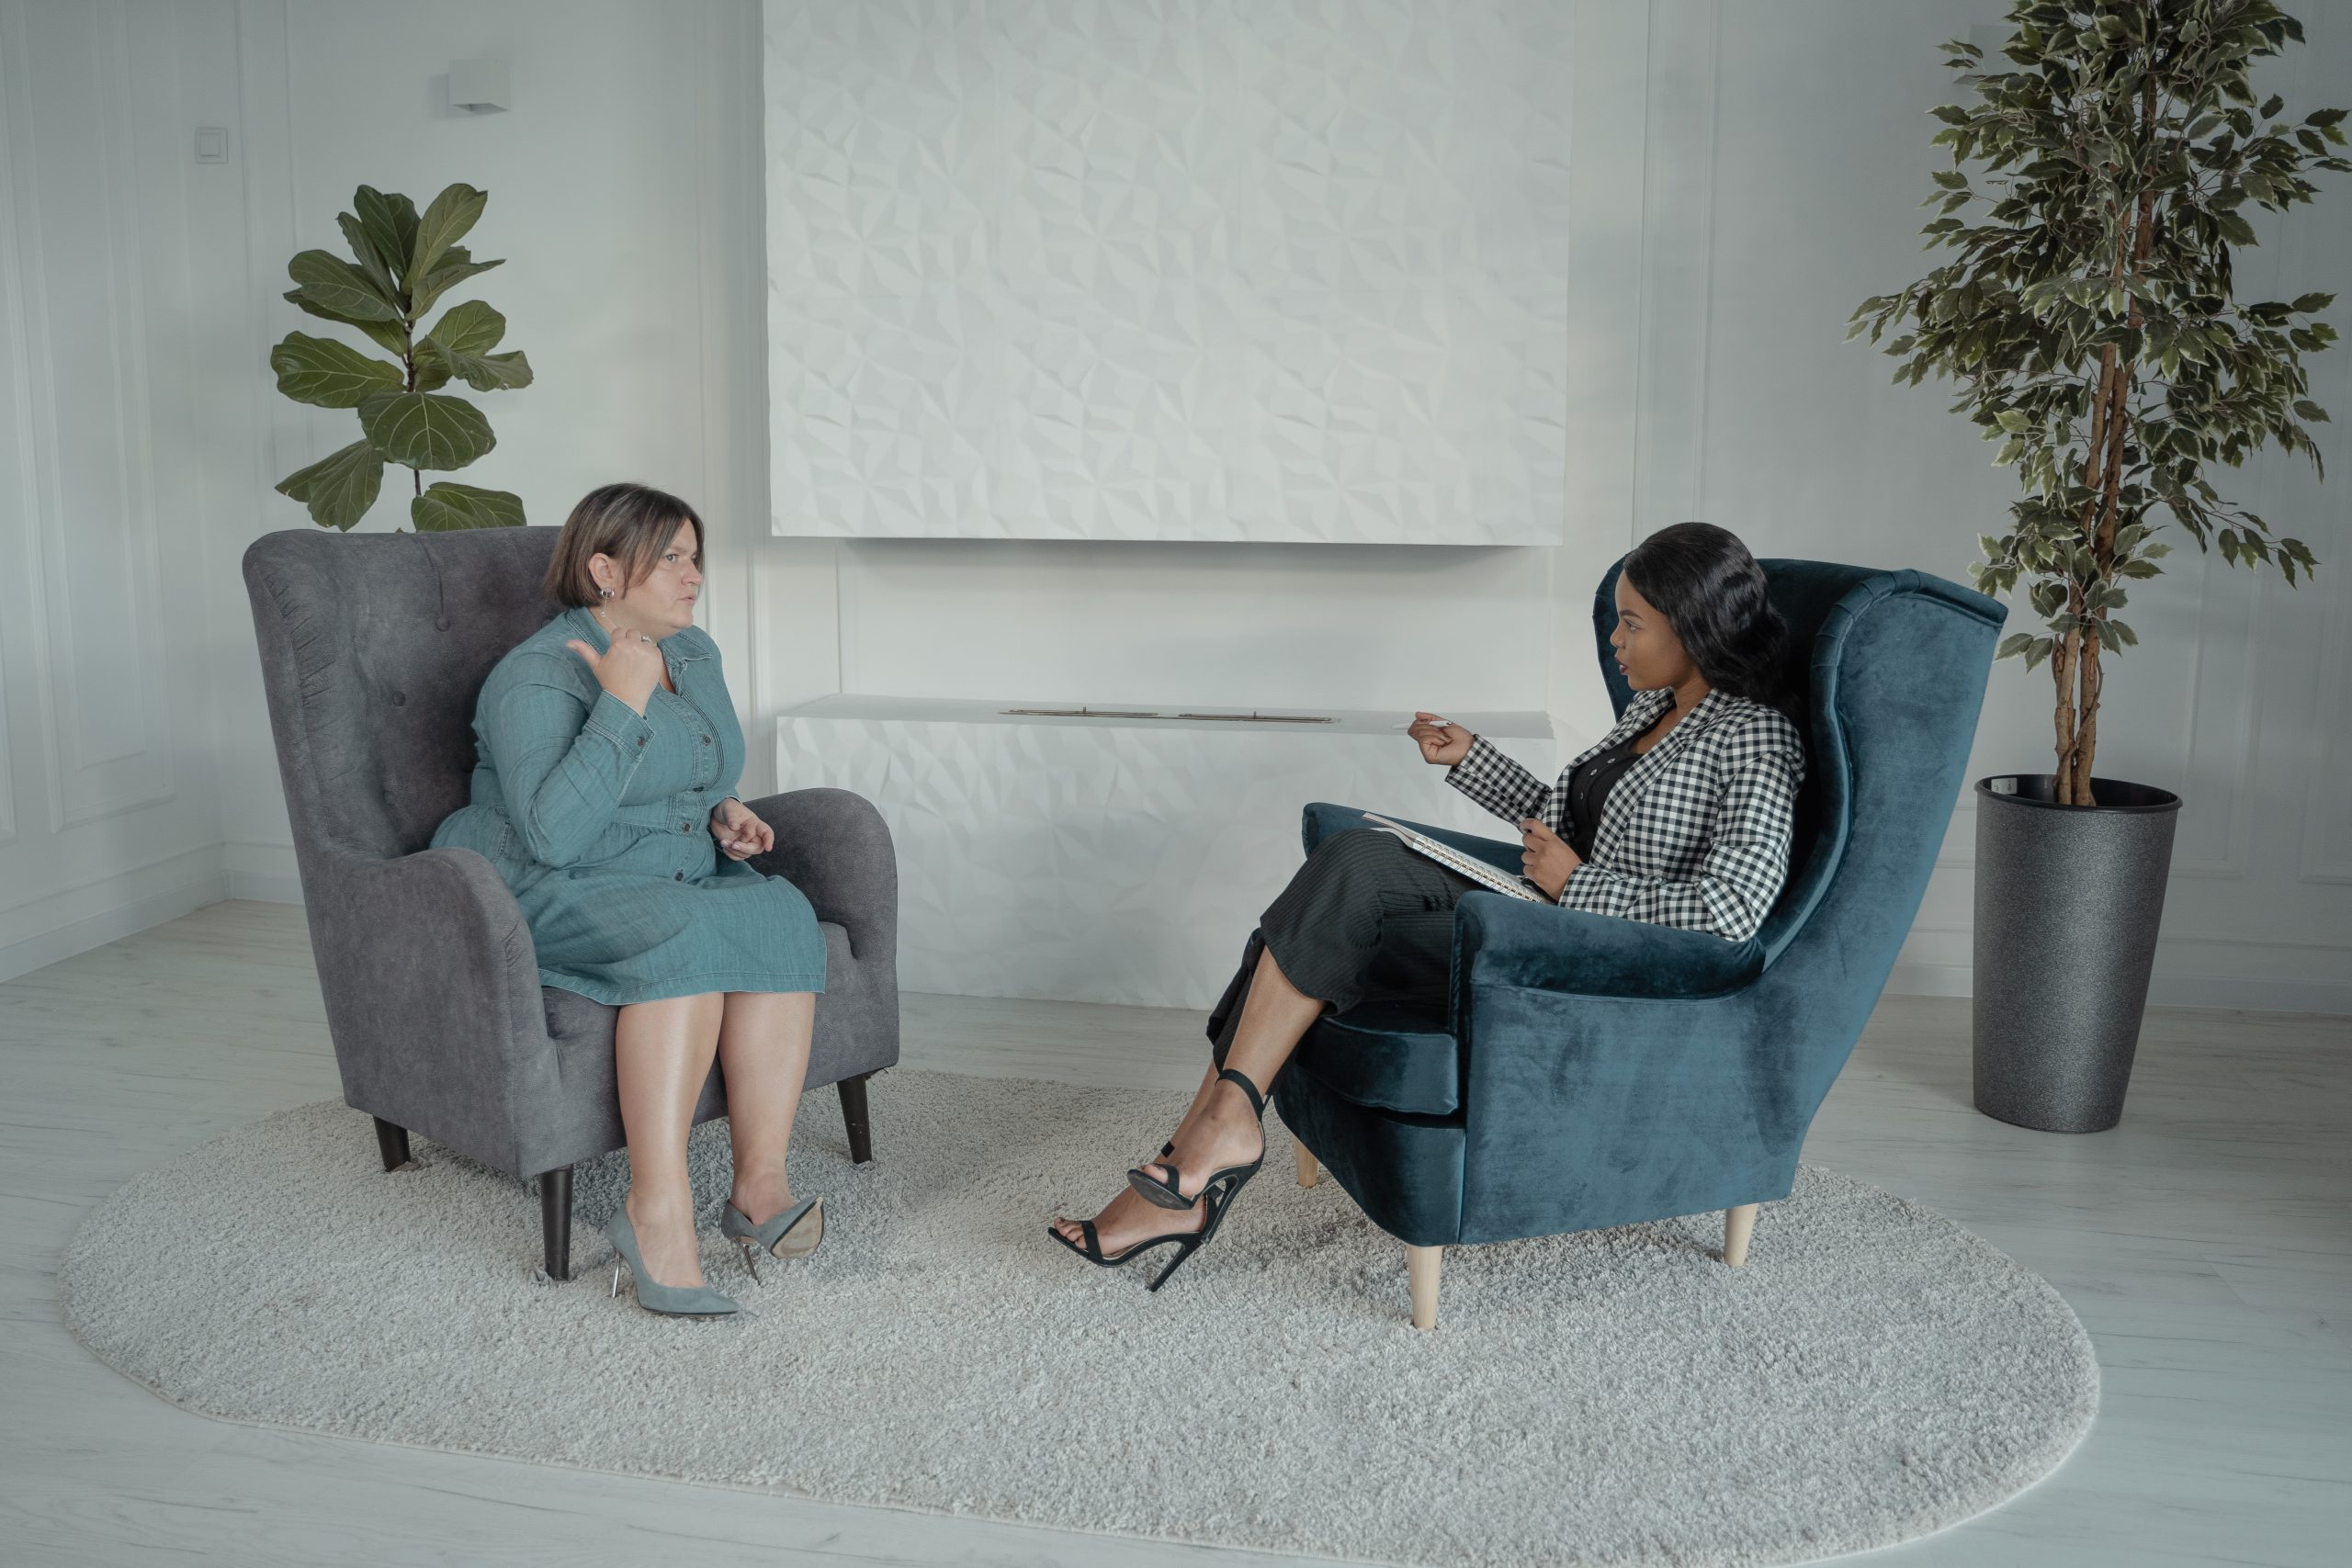 Two women sitting on chairs facing one another and one woman taking notes.